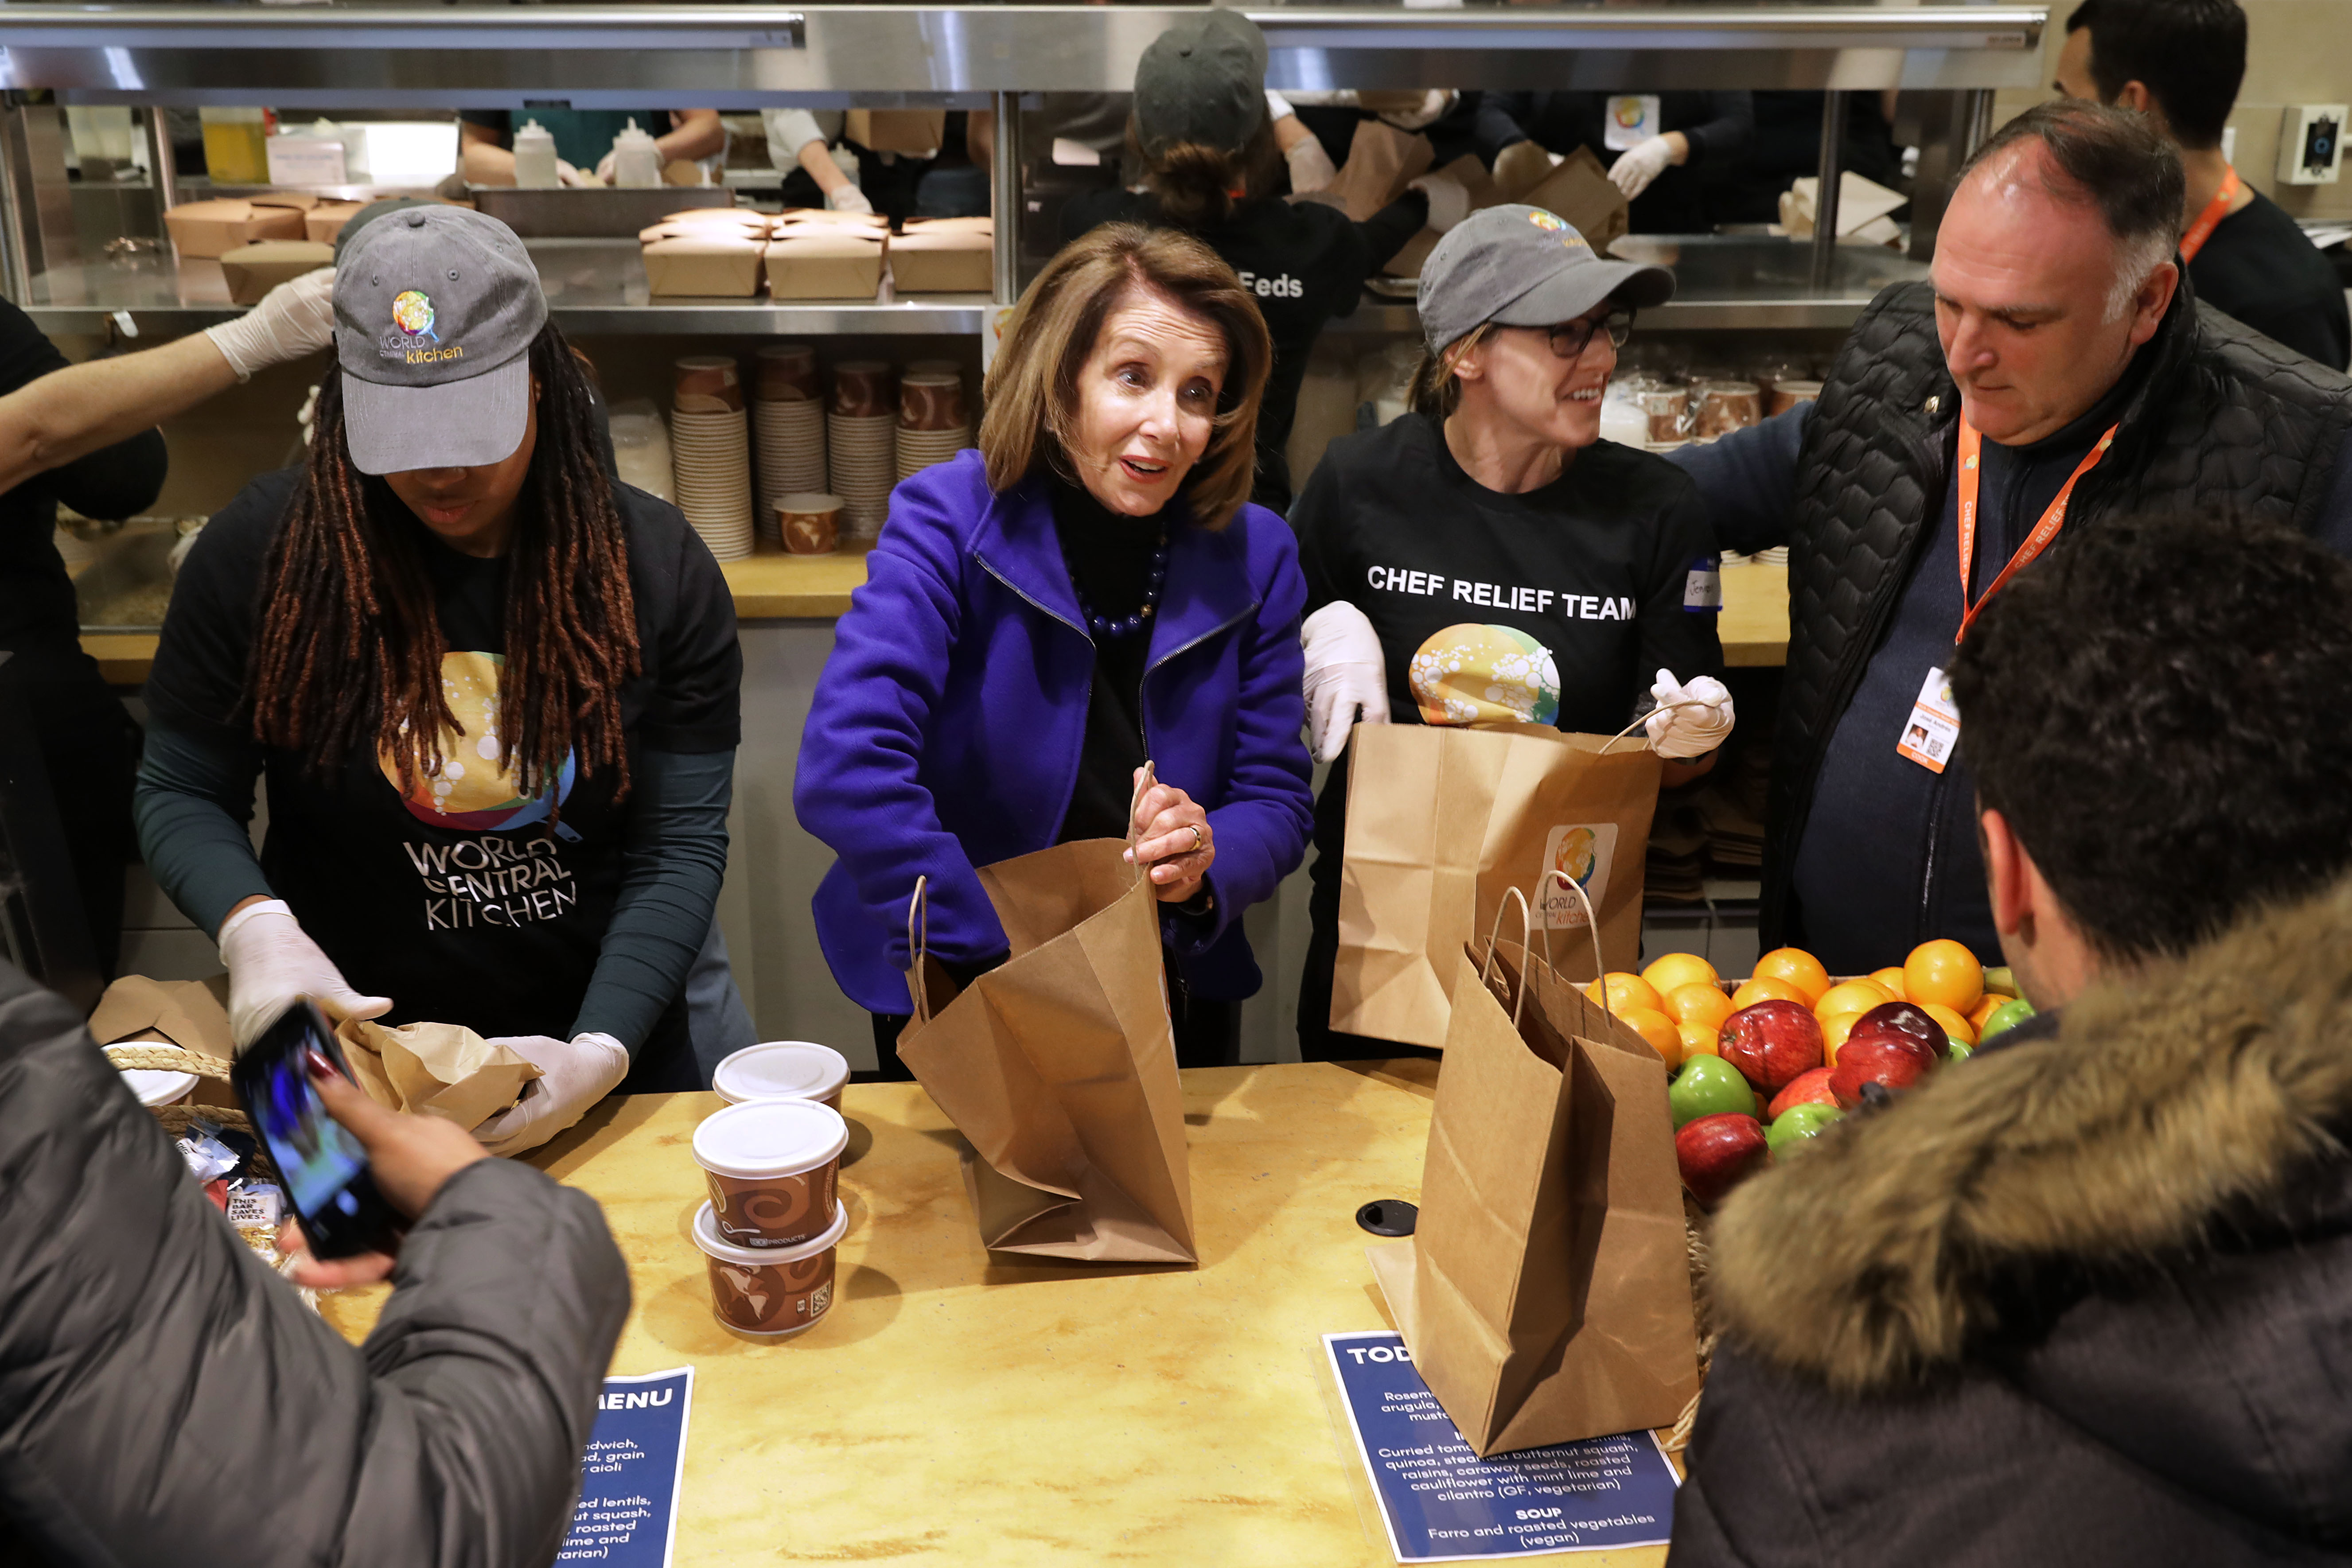 Speaker of the House Nancy Pelosi and chef Jose Andres help distribute food to furloughed federal workers at the World Central Kitchen on Jan. 22.